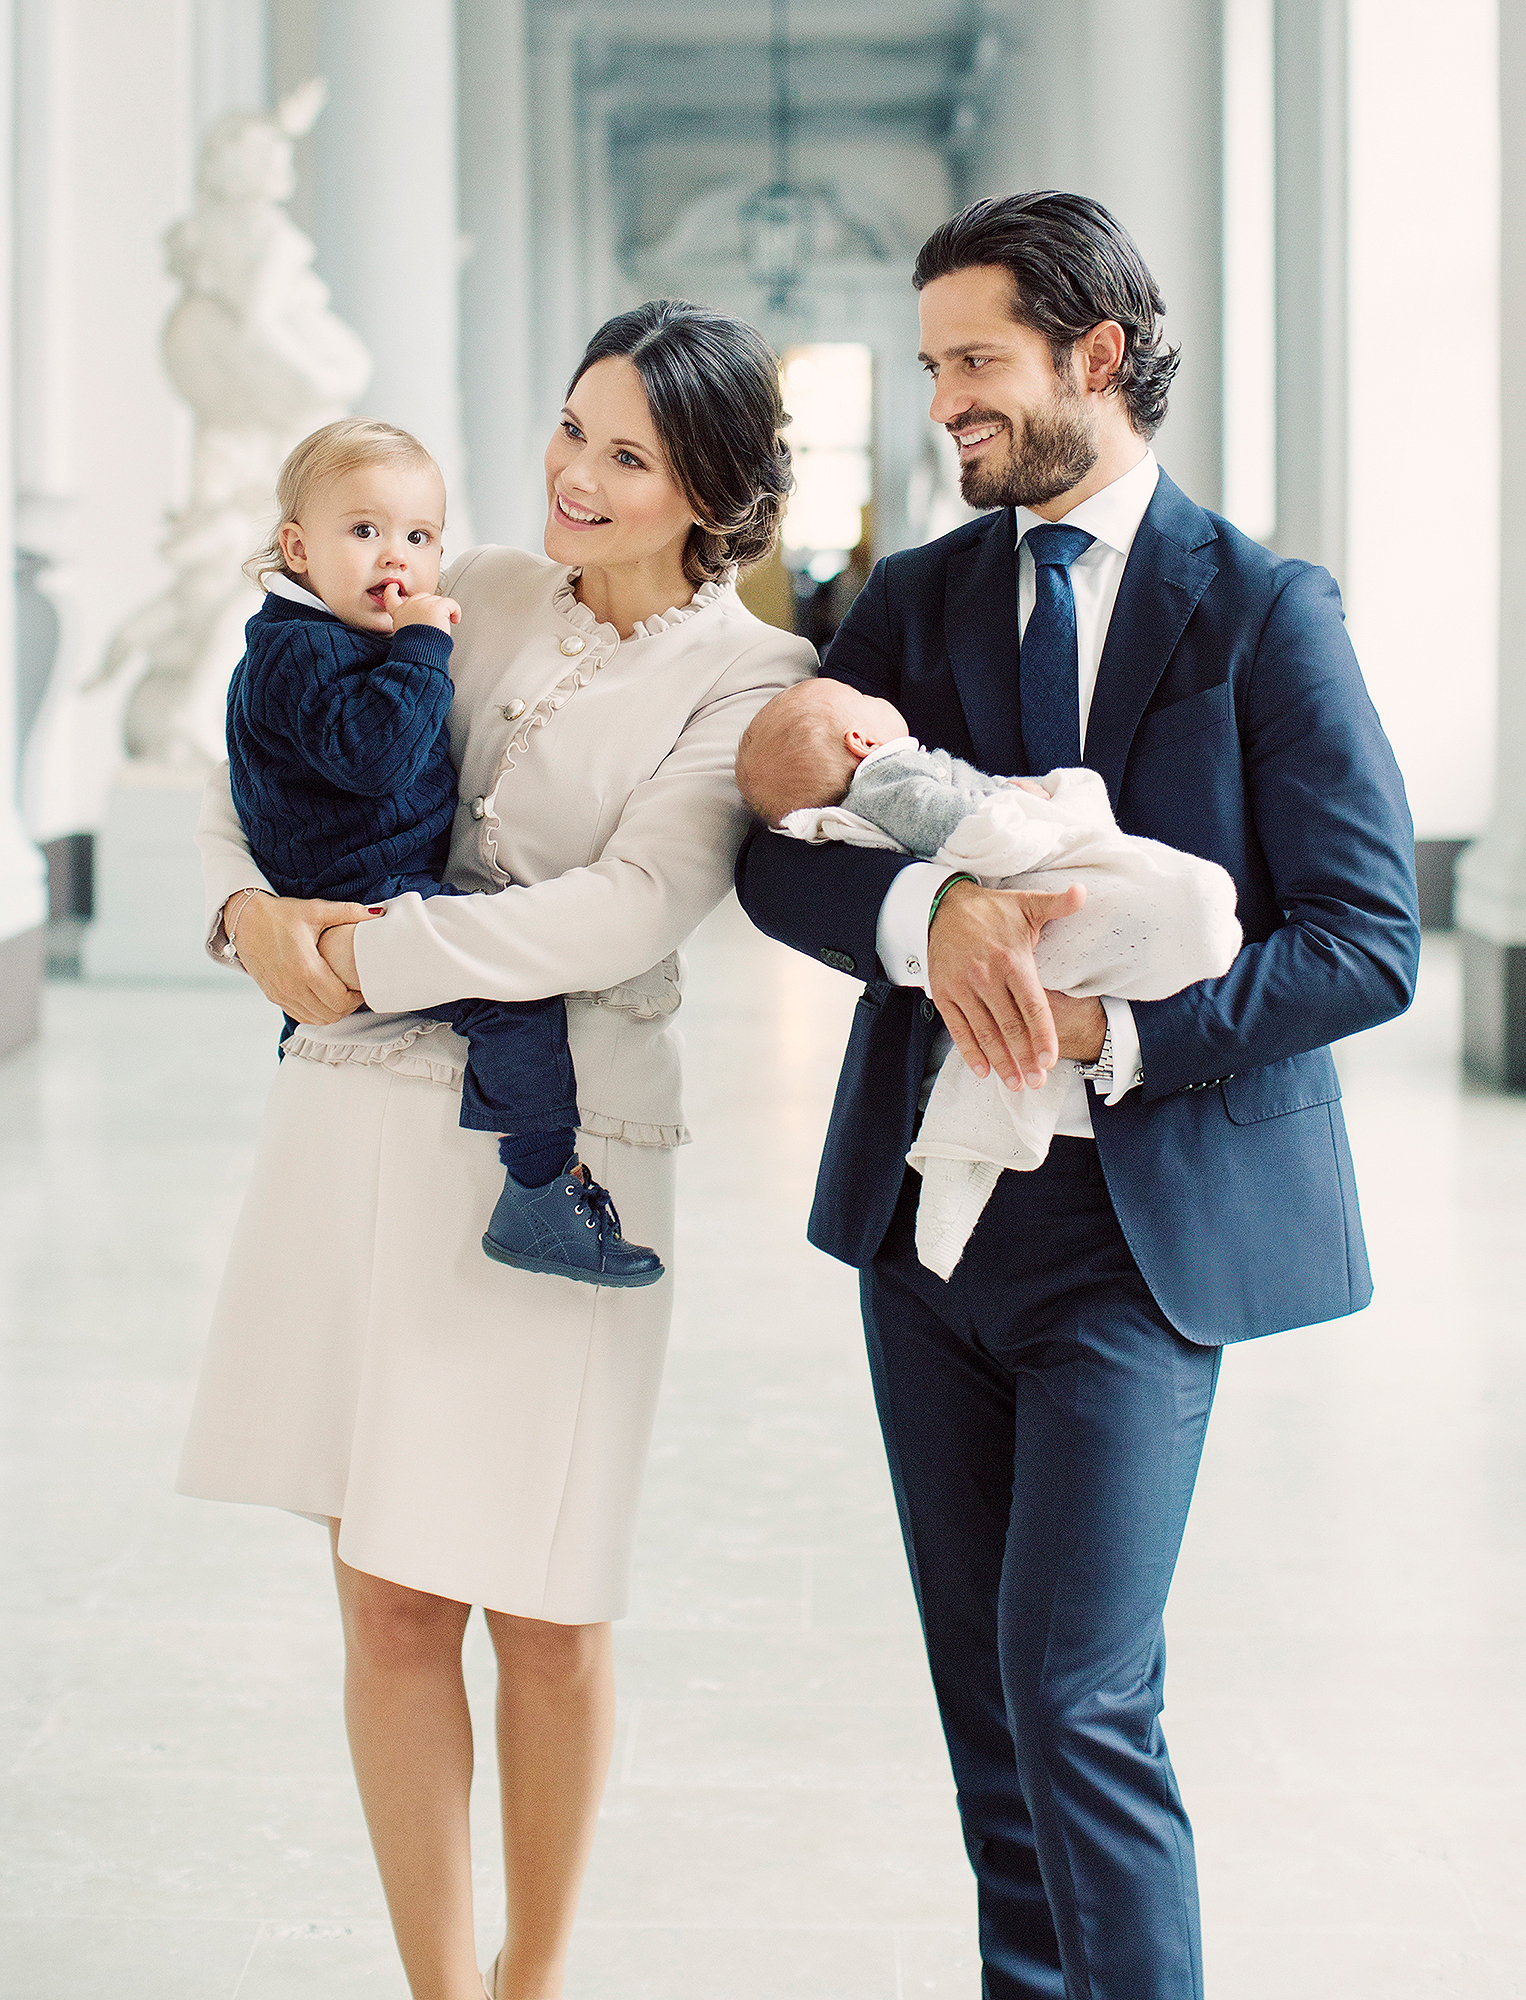 In the photo of the new family of four Prince Alexander stares wide eyed at the camera alongside his younger sibling Photo C ERIKA GERDEMARK THE ROYAL COURT SWEDEN